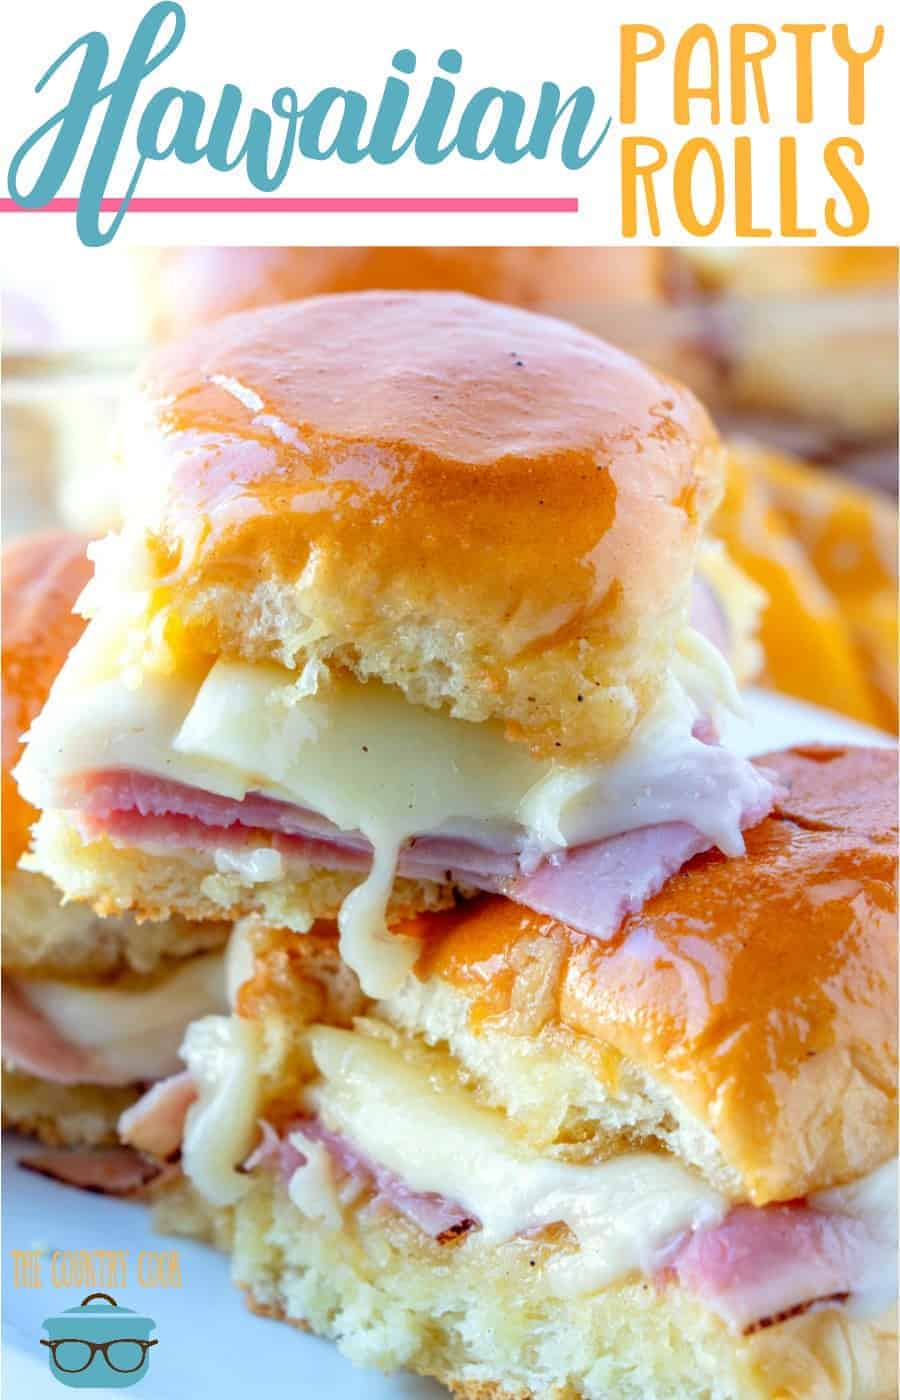 These delicious Glazed Ham and Cheese Hawaiian Party Rolls are the perfect party food! Everyone will be begging you for the recipe!